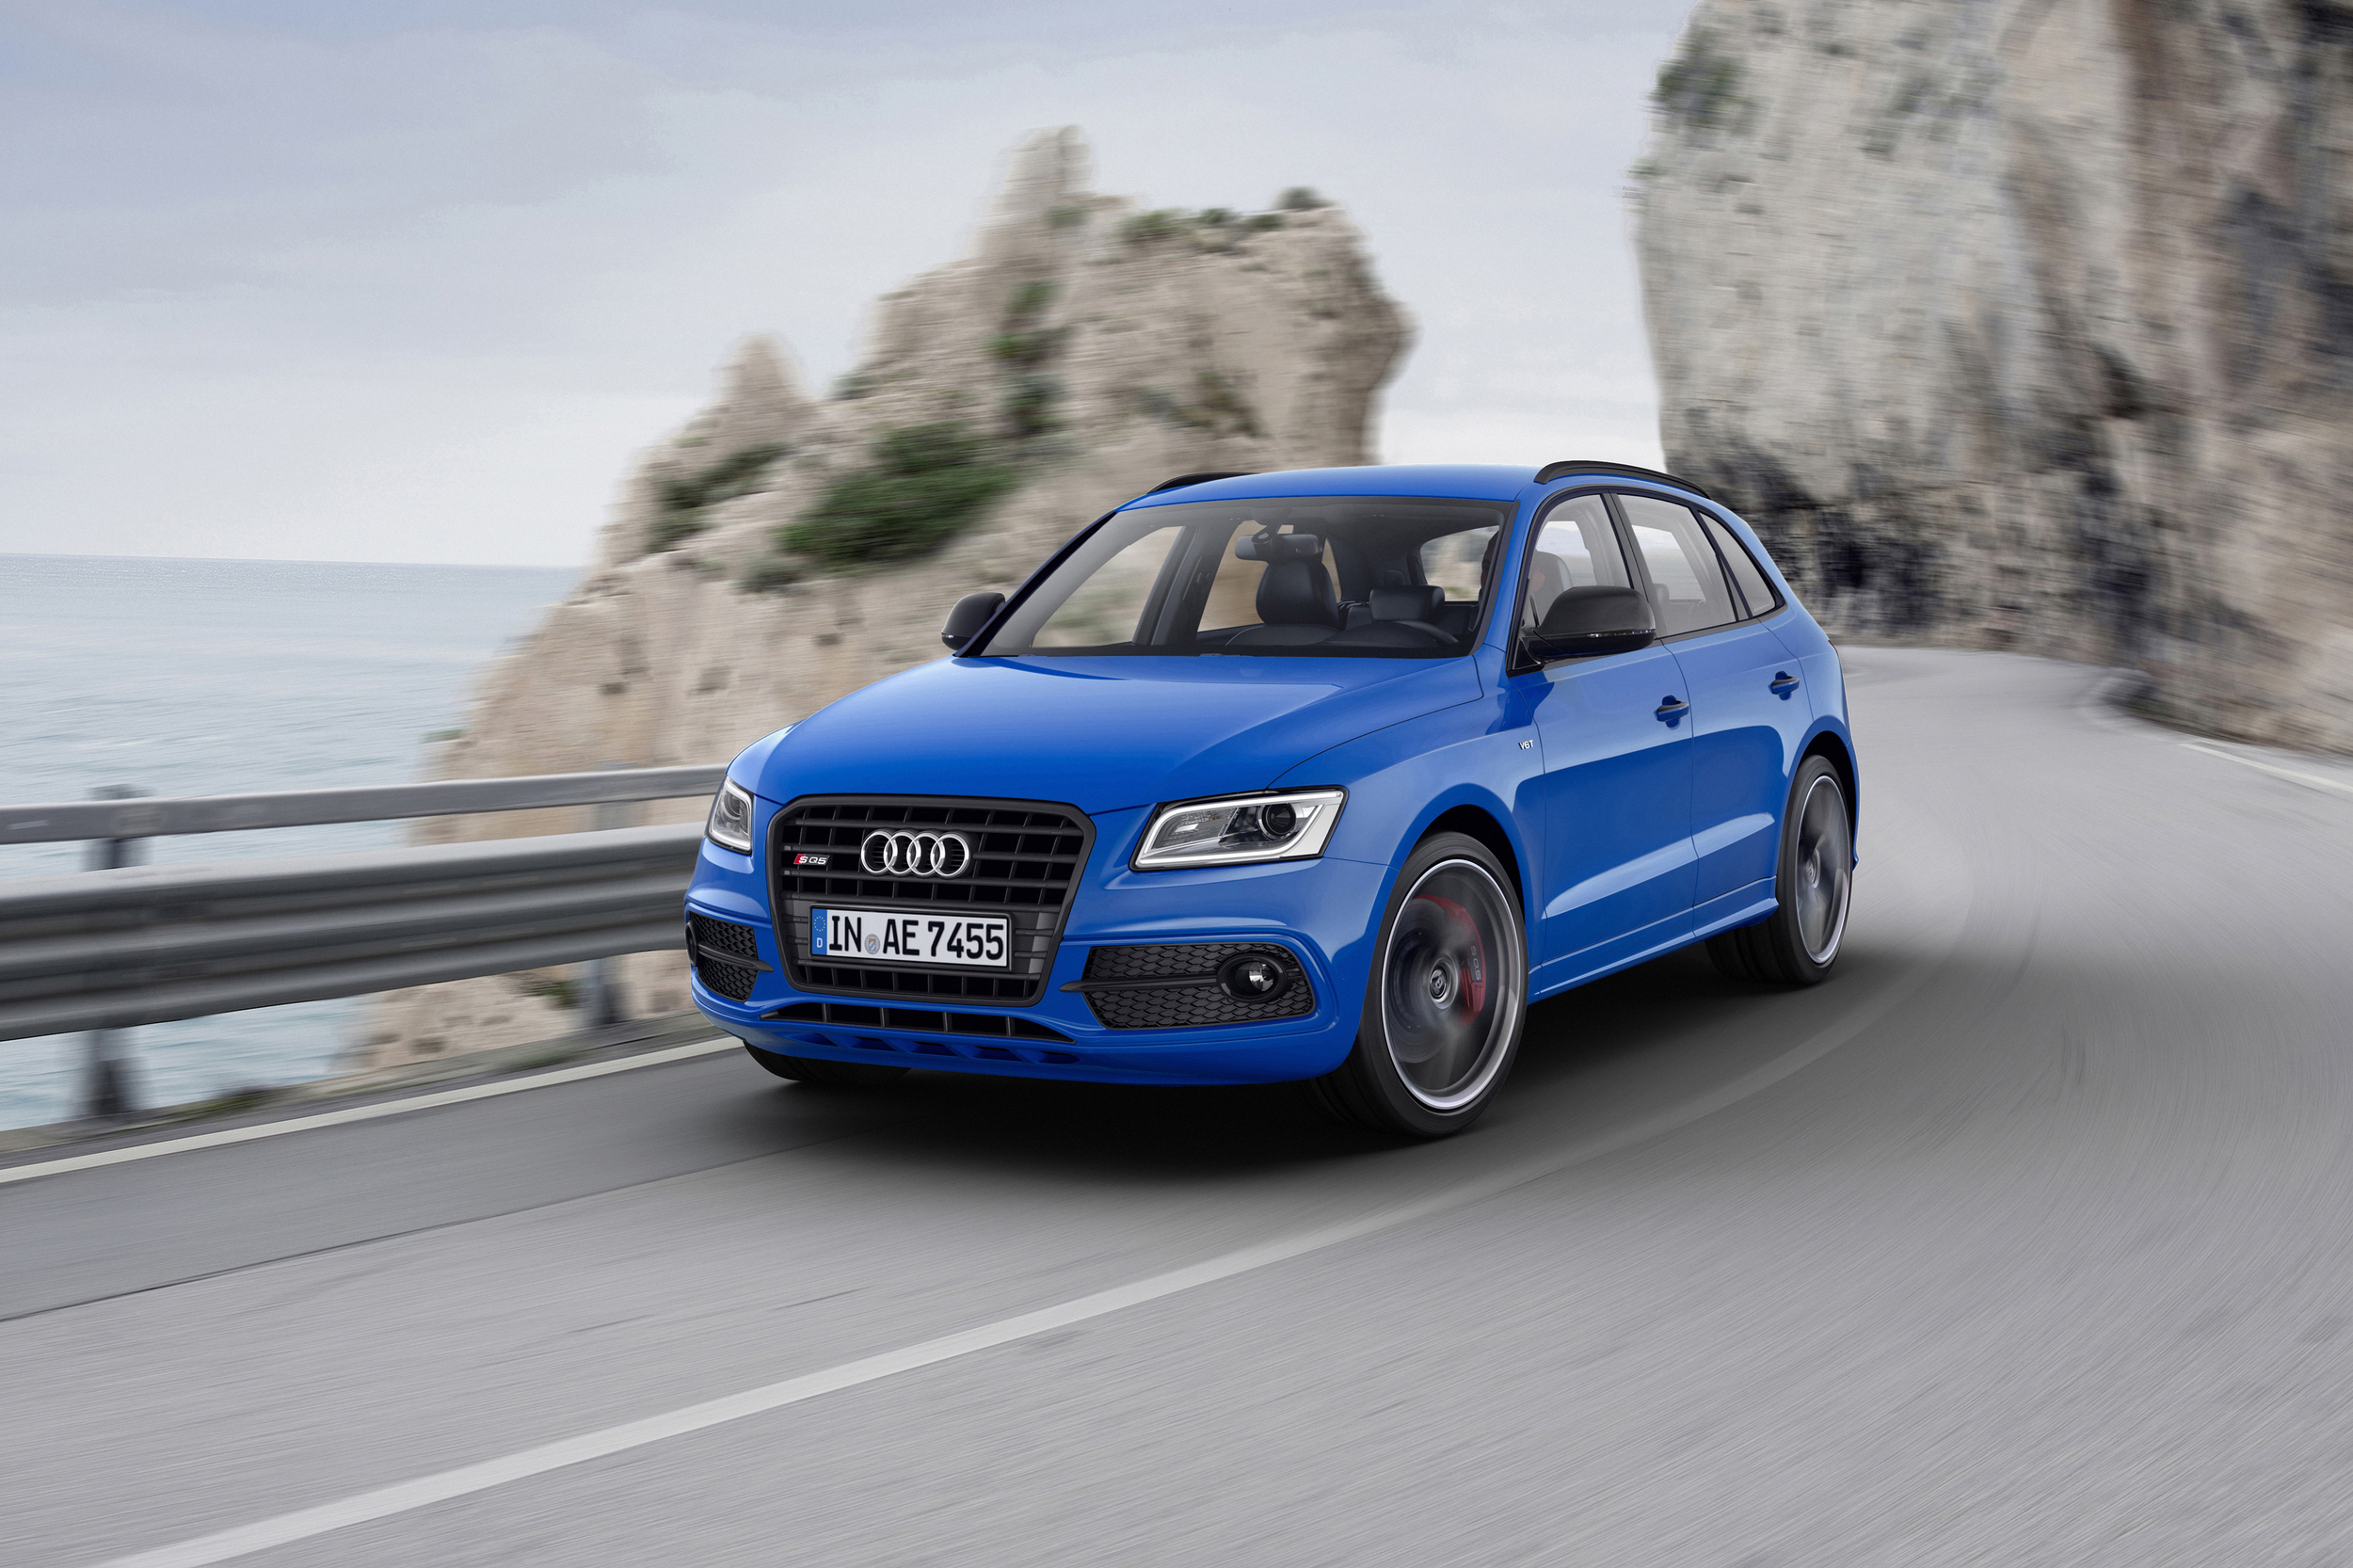 2016 Audi SQ5 TDI Plus Exterior Preview